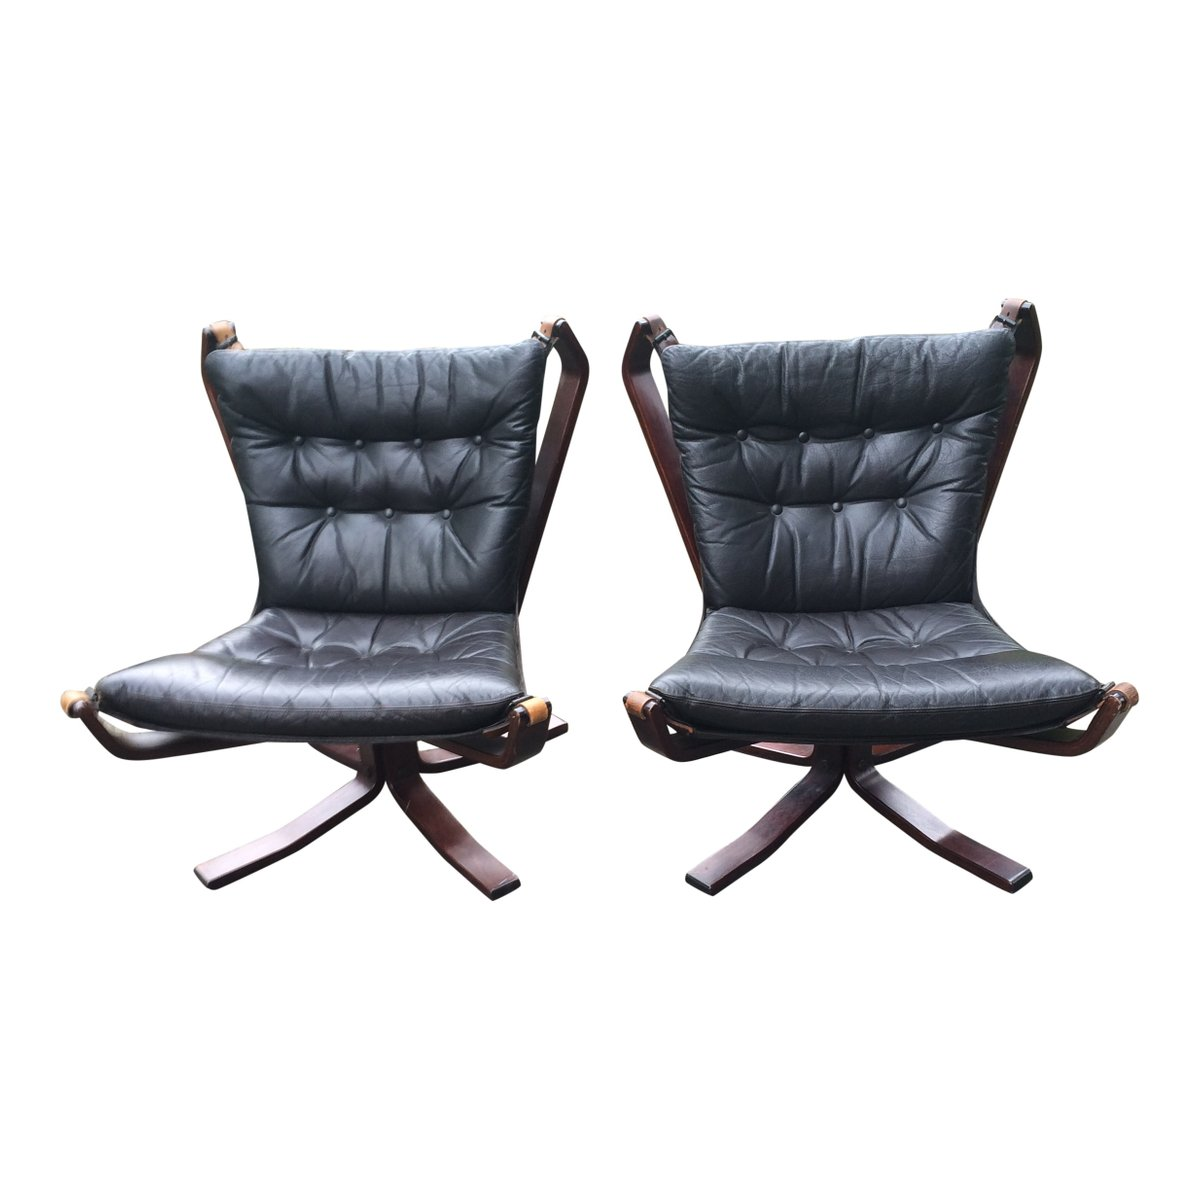 Black Chairs For Sale Black Leather Falcon Chair By Sigurd Ressell Set Of 2 For